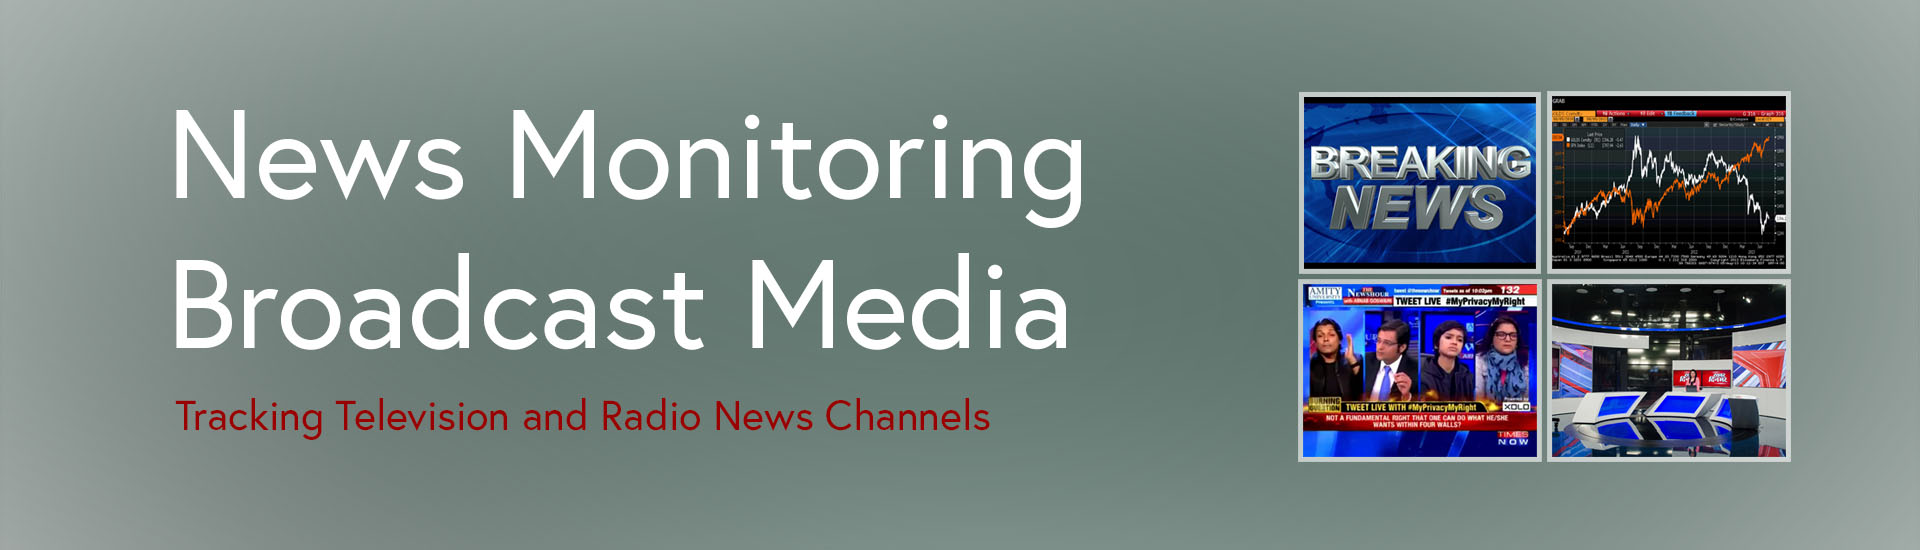 News Monitoring - broadcast Media